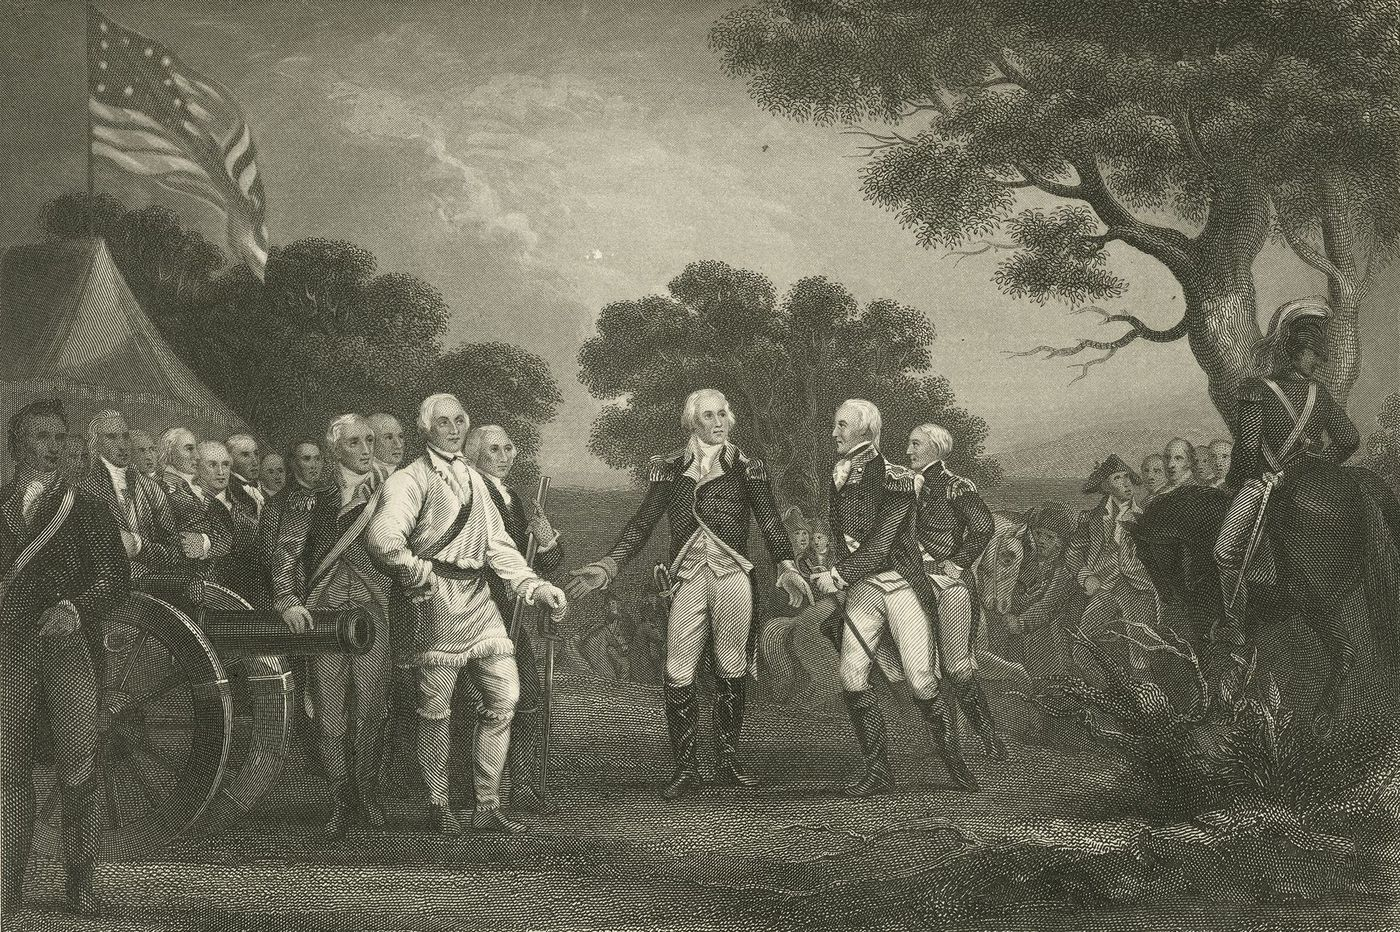 In 1777, a British general made a big strategic error: Trying to conquer Philadelphia | Philly History